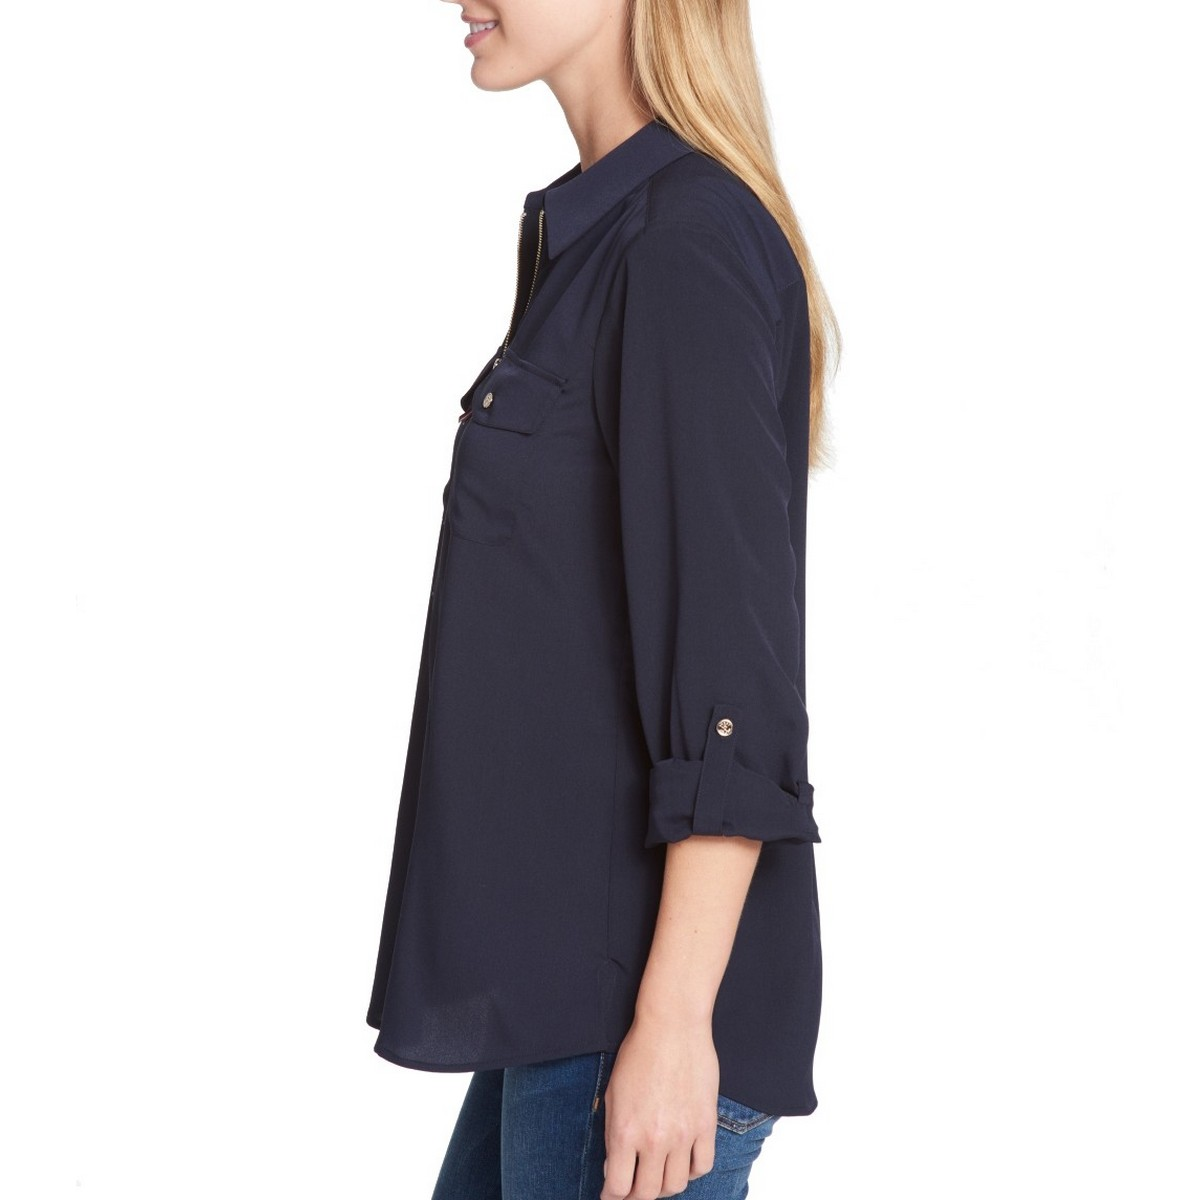 TOMMY-HILFIGER-NEW-Women-039-s-1-2-Zip-Utility-Casual-Shirt-Top-TEDO thumbnail 3